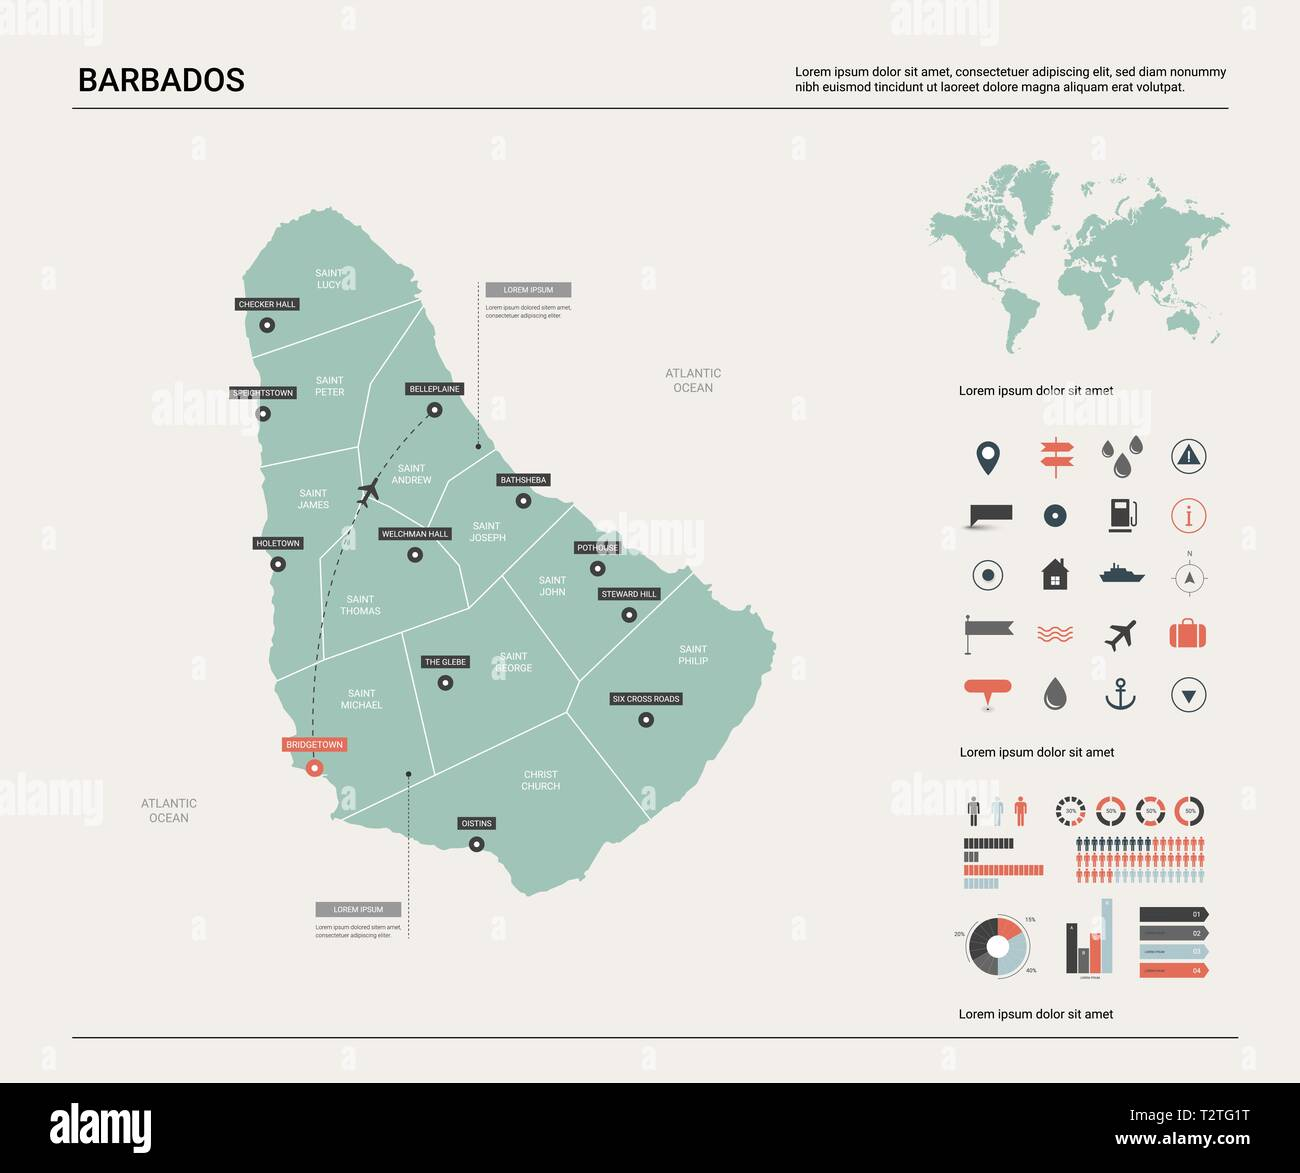 Picture of: Vector Map Of Barbados High Detailed Country Map With Division Cities And Capital Bridgetown Political Map World Map Infographic Elements Stock Vector Image Art Alamy